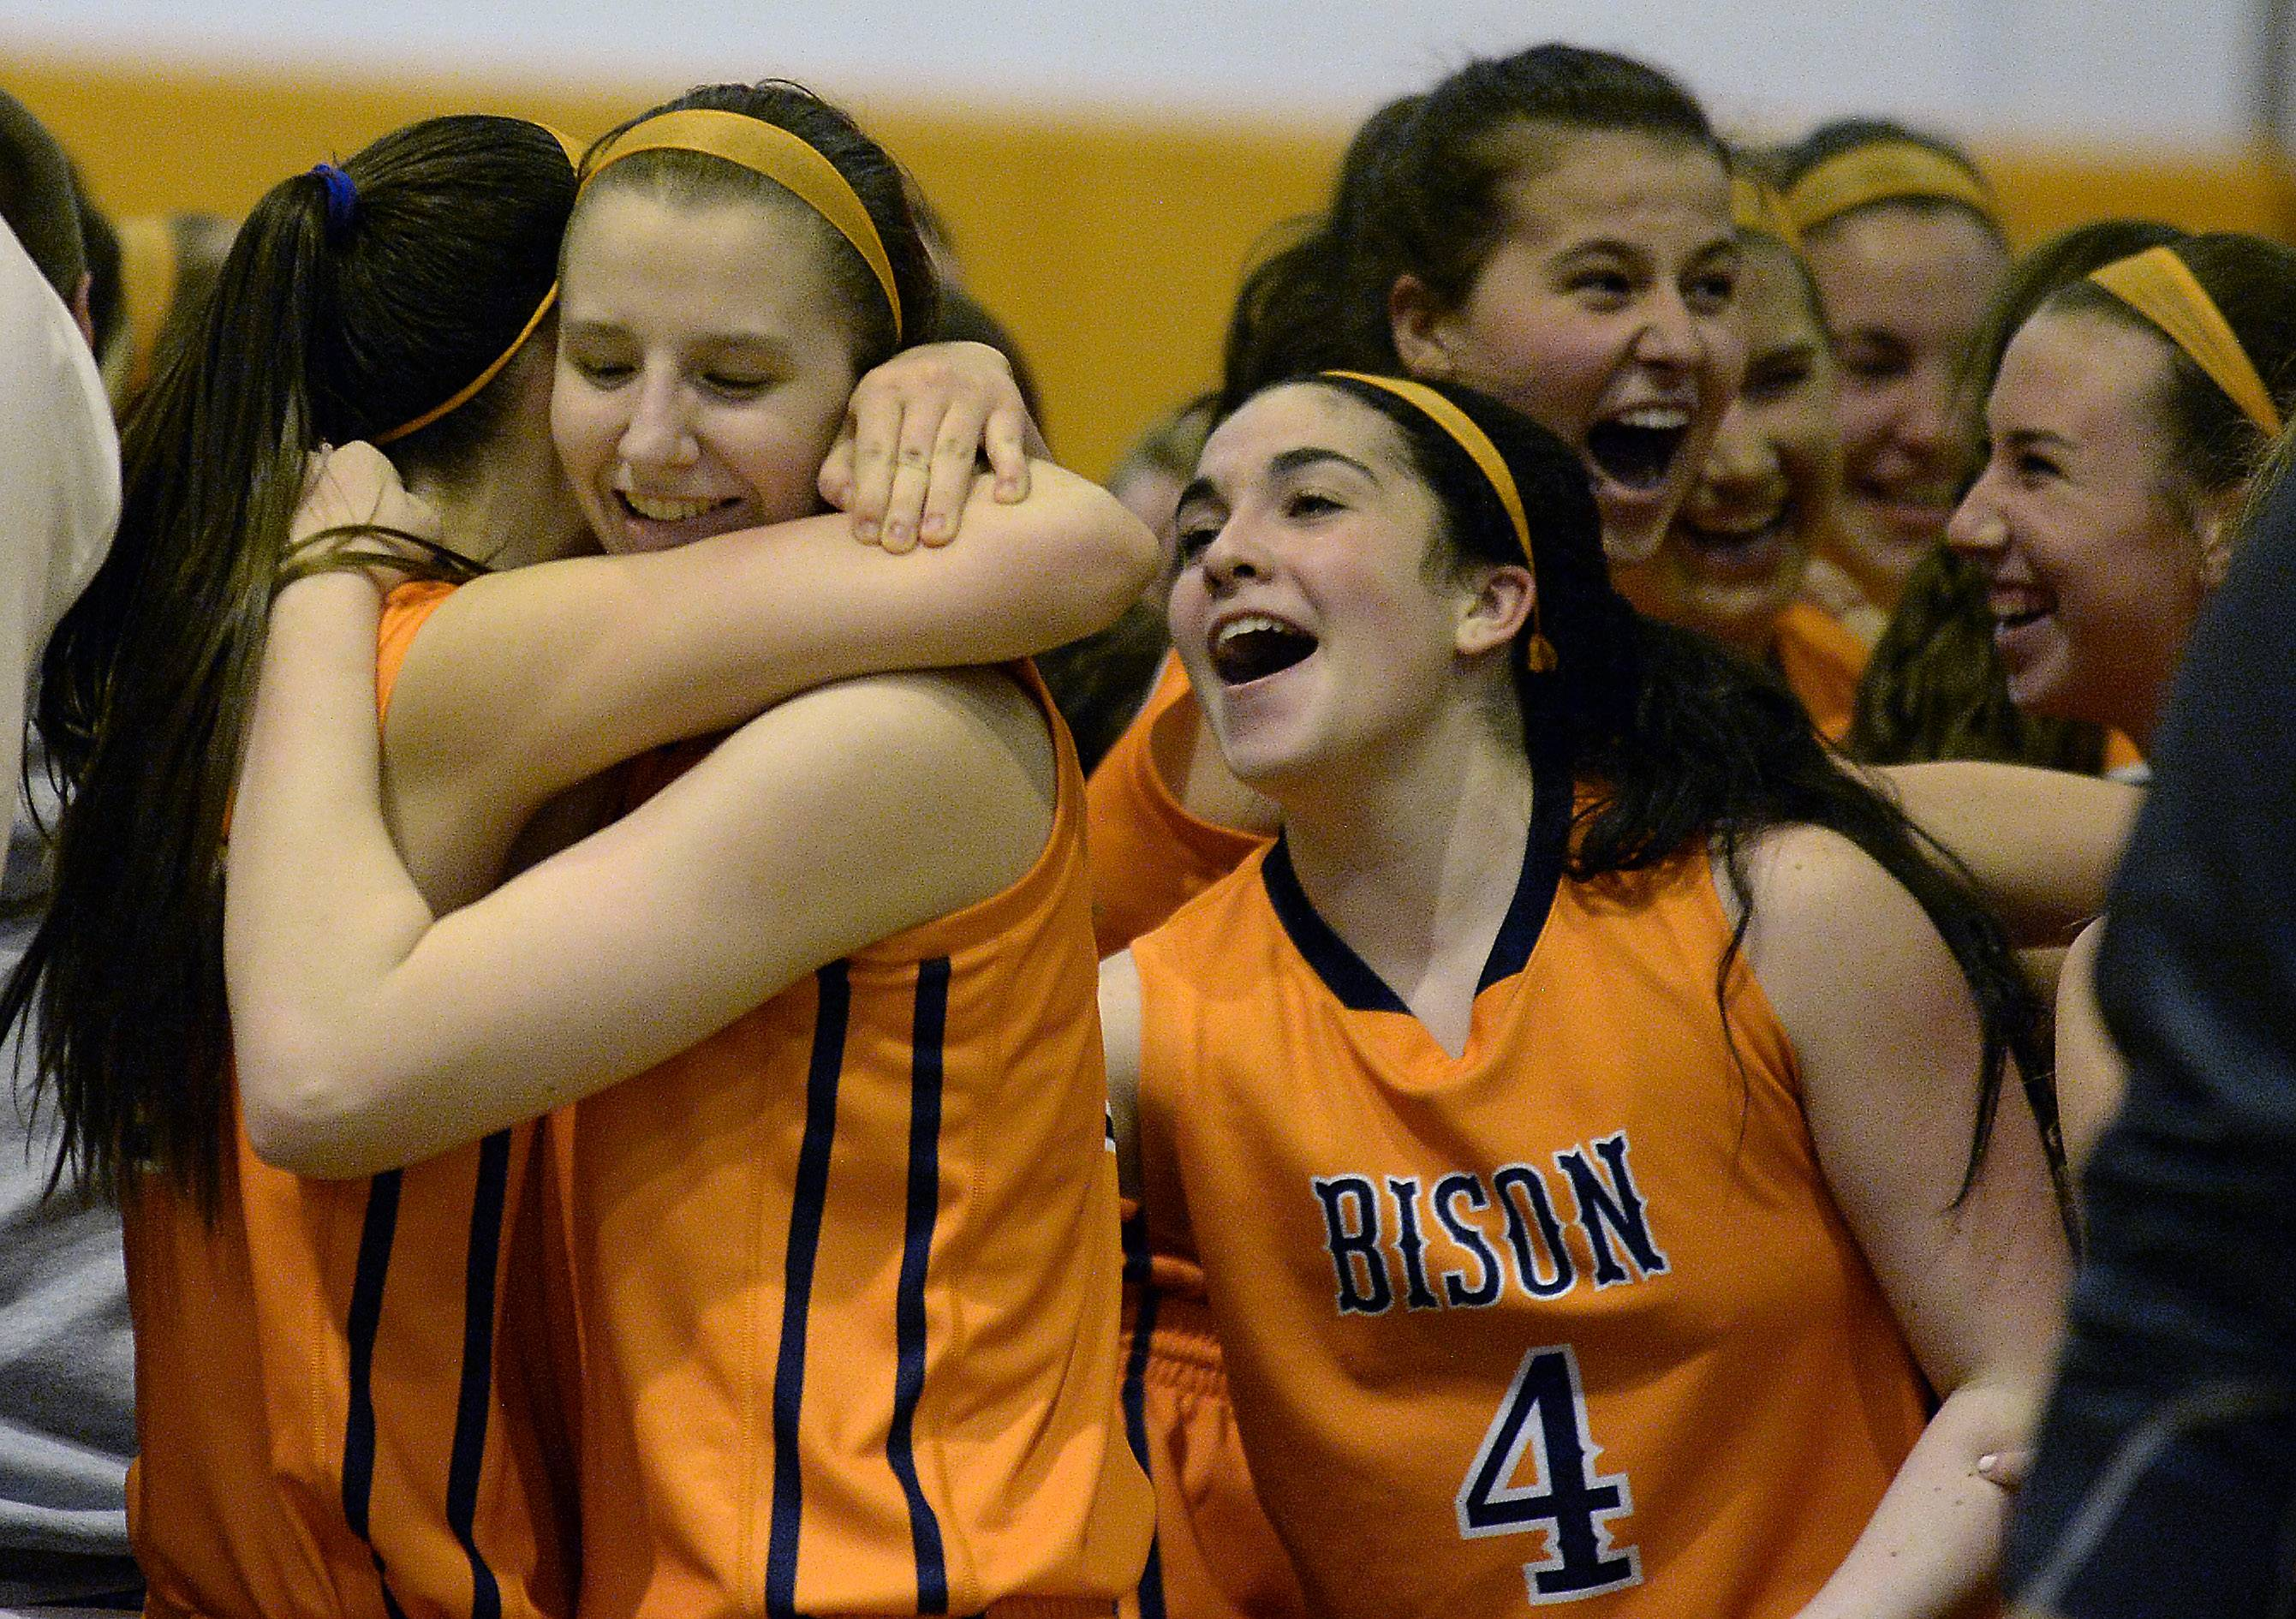 Buffalo Grove's Maddy Callahan, Maddie Welter and Julie Jambrone (4) celebrate their OT victory against Prospect in Class 4A regional championship action Thursday at Buffalo Grove.